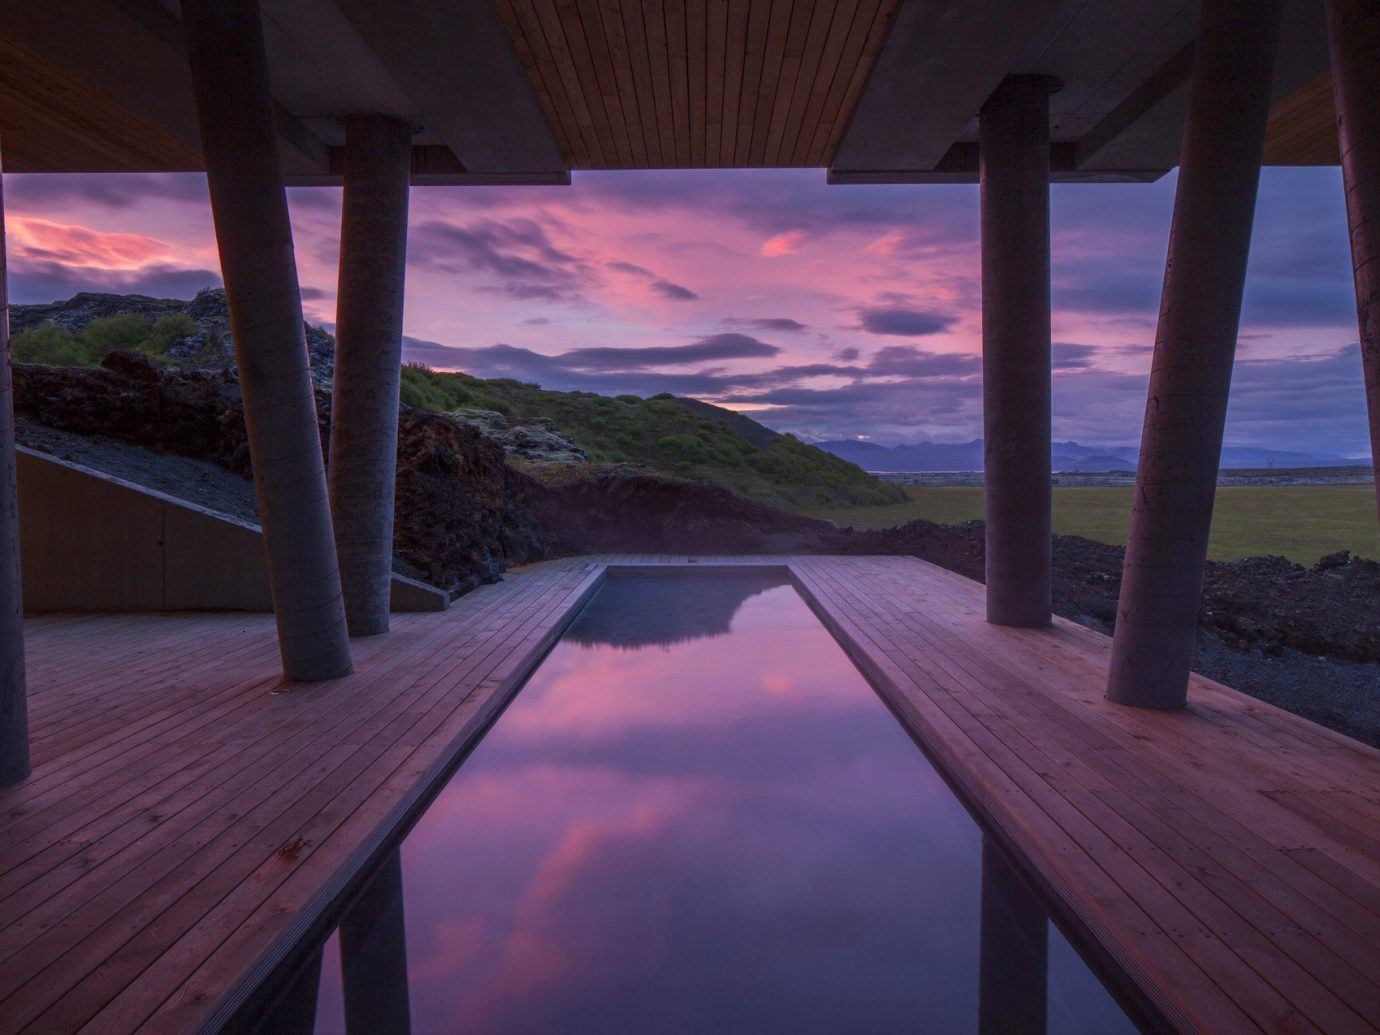 Architecture Boutique calm clouds cloudy contemporary dawn Design dusk Elegant extravagant fancy Hotels Iceland isolation Luxury majestic Modern Mountains Nature outdoor pool Outdoors Patio pink pink sky Pool private private pool purple sky reflection regal remote serene sophisticated Style + Design Sunset Terrace view pier outdoor scene wooden ground sky blue Ocean Sea vacation evening morning estate sunlight Beach screenshot wood overlooking